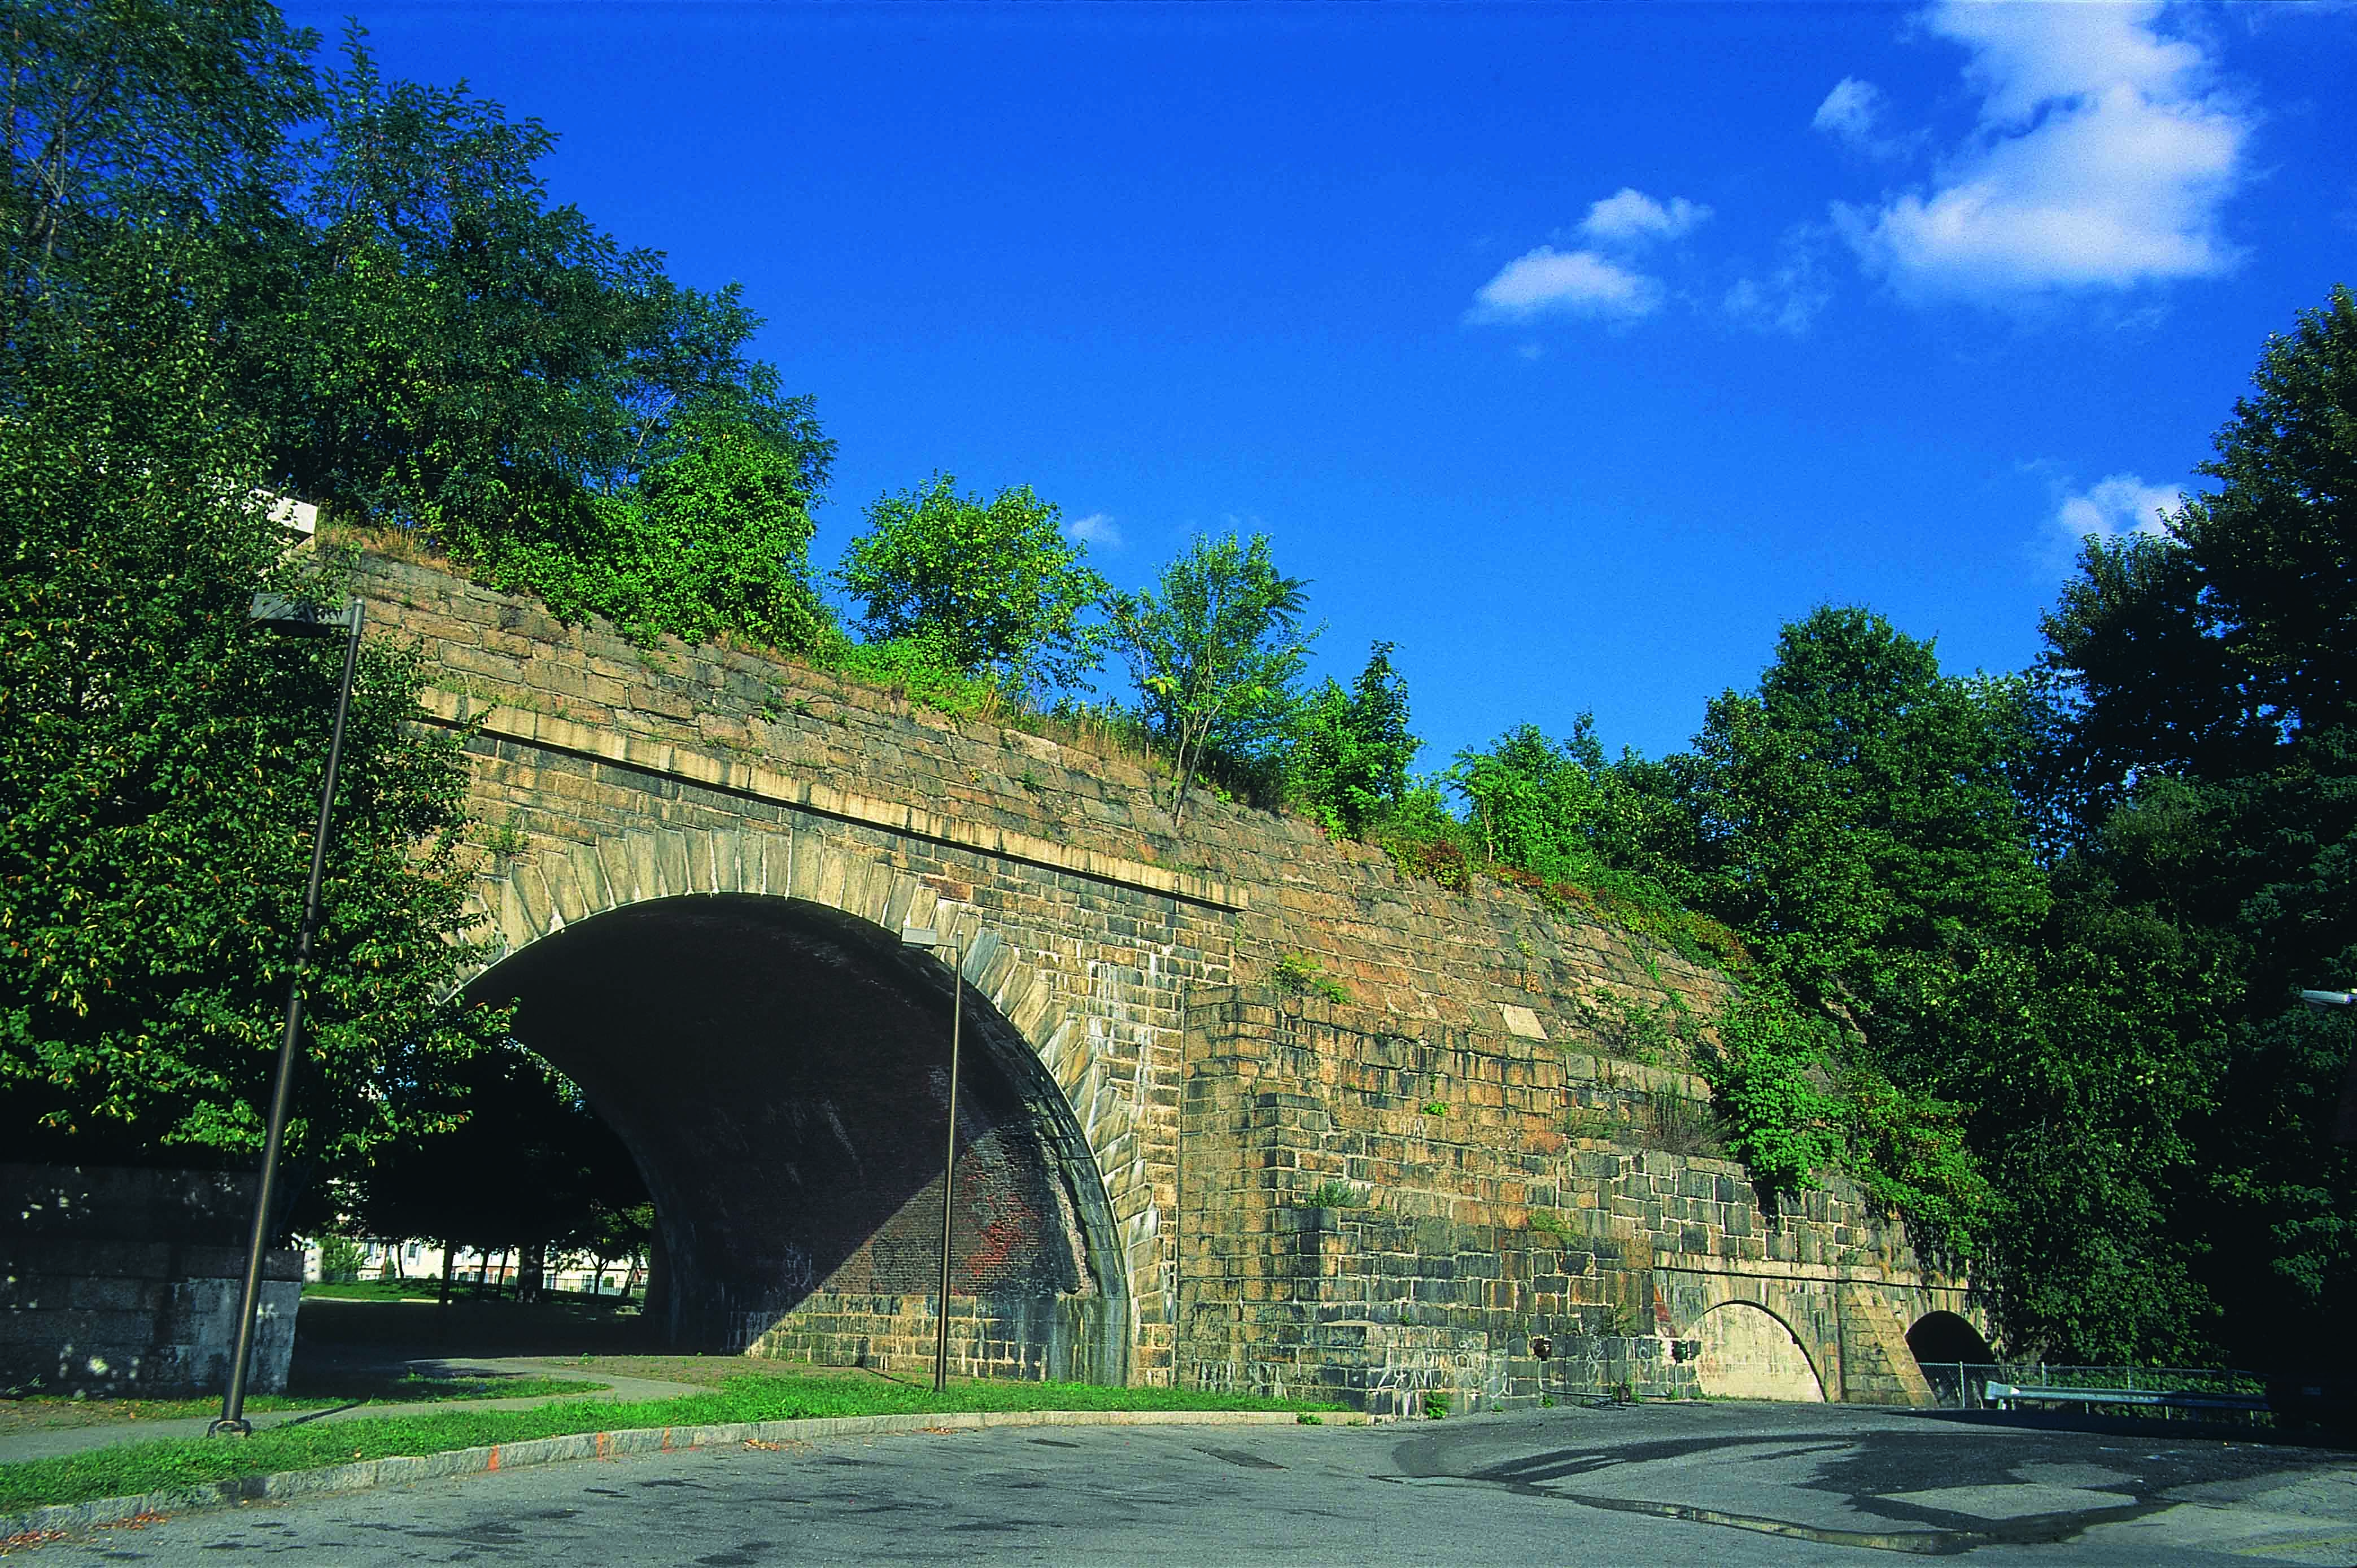 Old Croton Aqueduct crossing of Nepperhan Avenue in Yonkers.